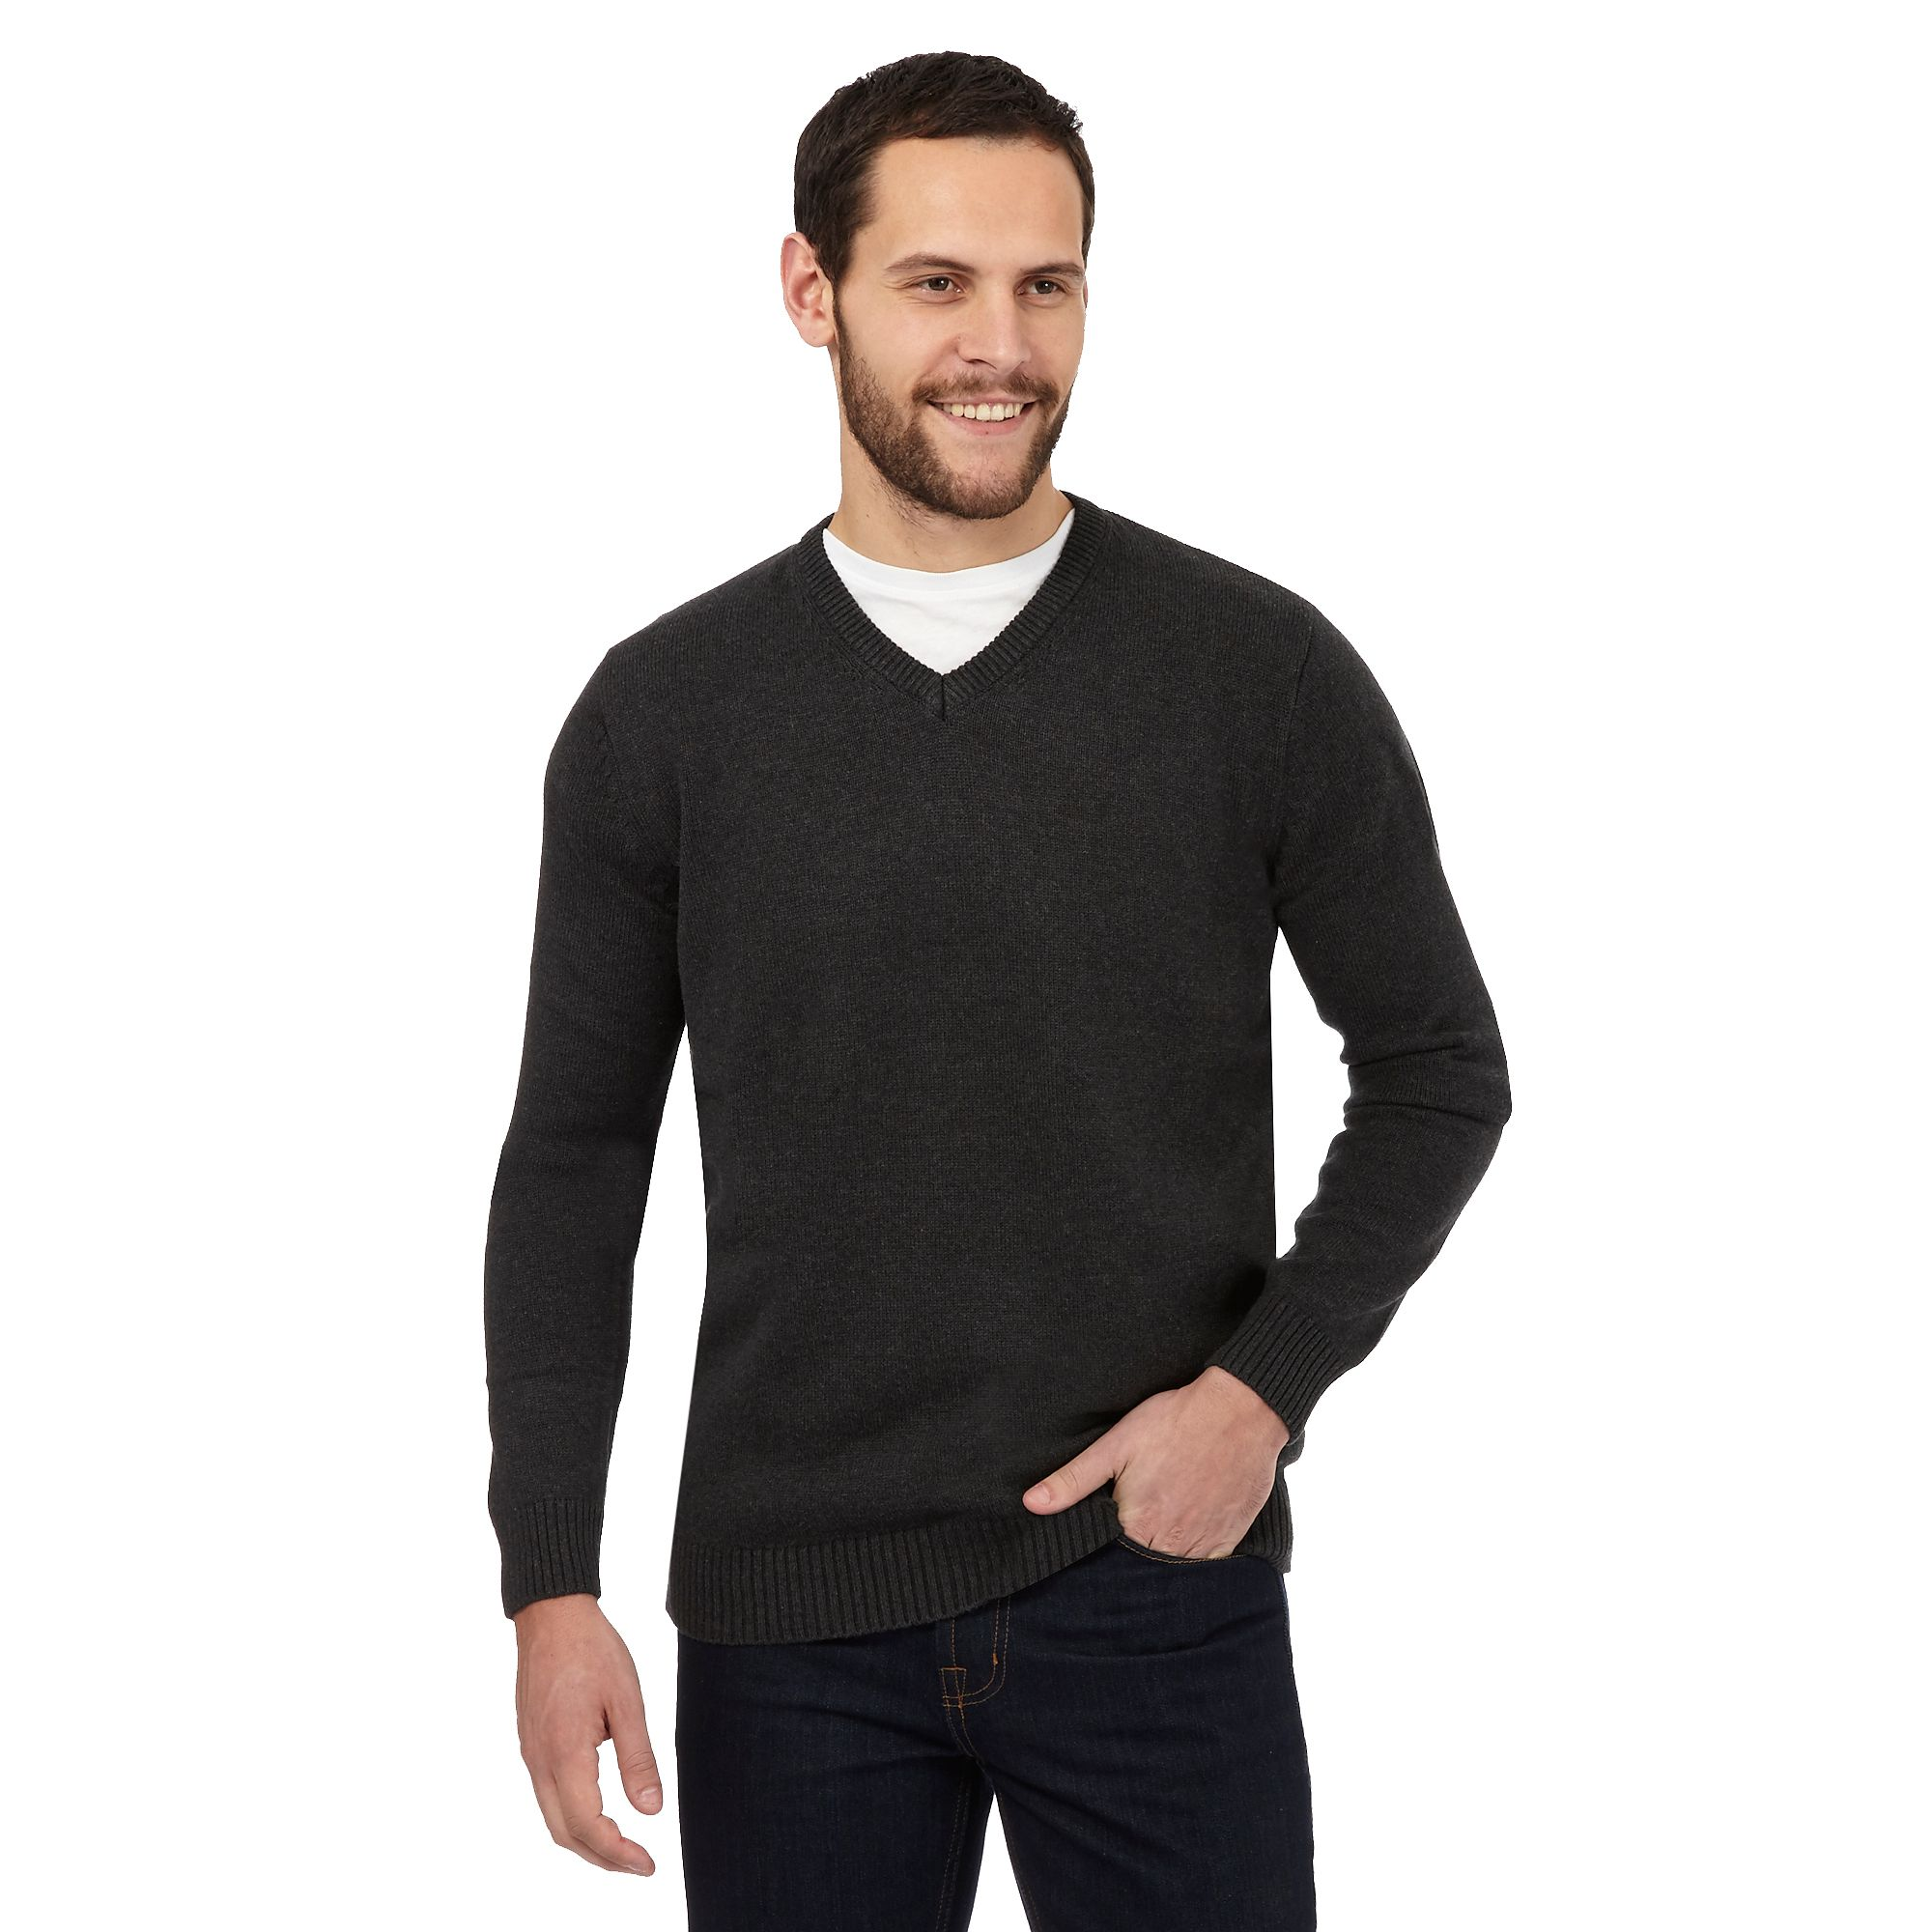 Sweaters for Men. From laidback and comfortable to tailored and formal, Abercrombie & Fitch mens sweaters are made for modern comfort that never skimps on style.